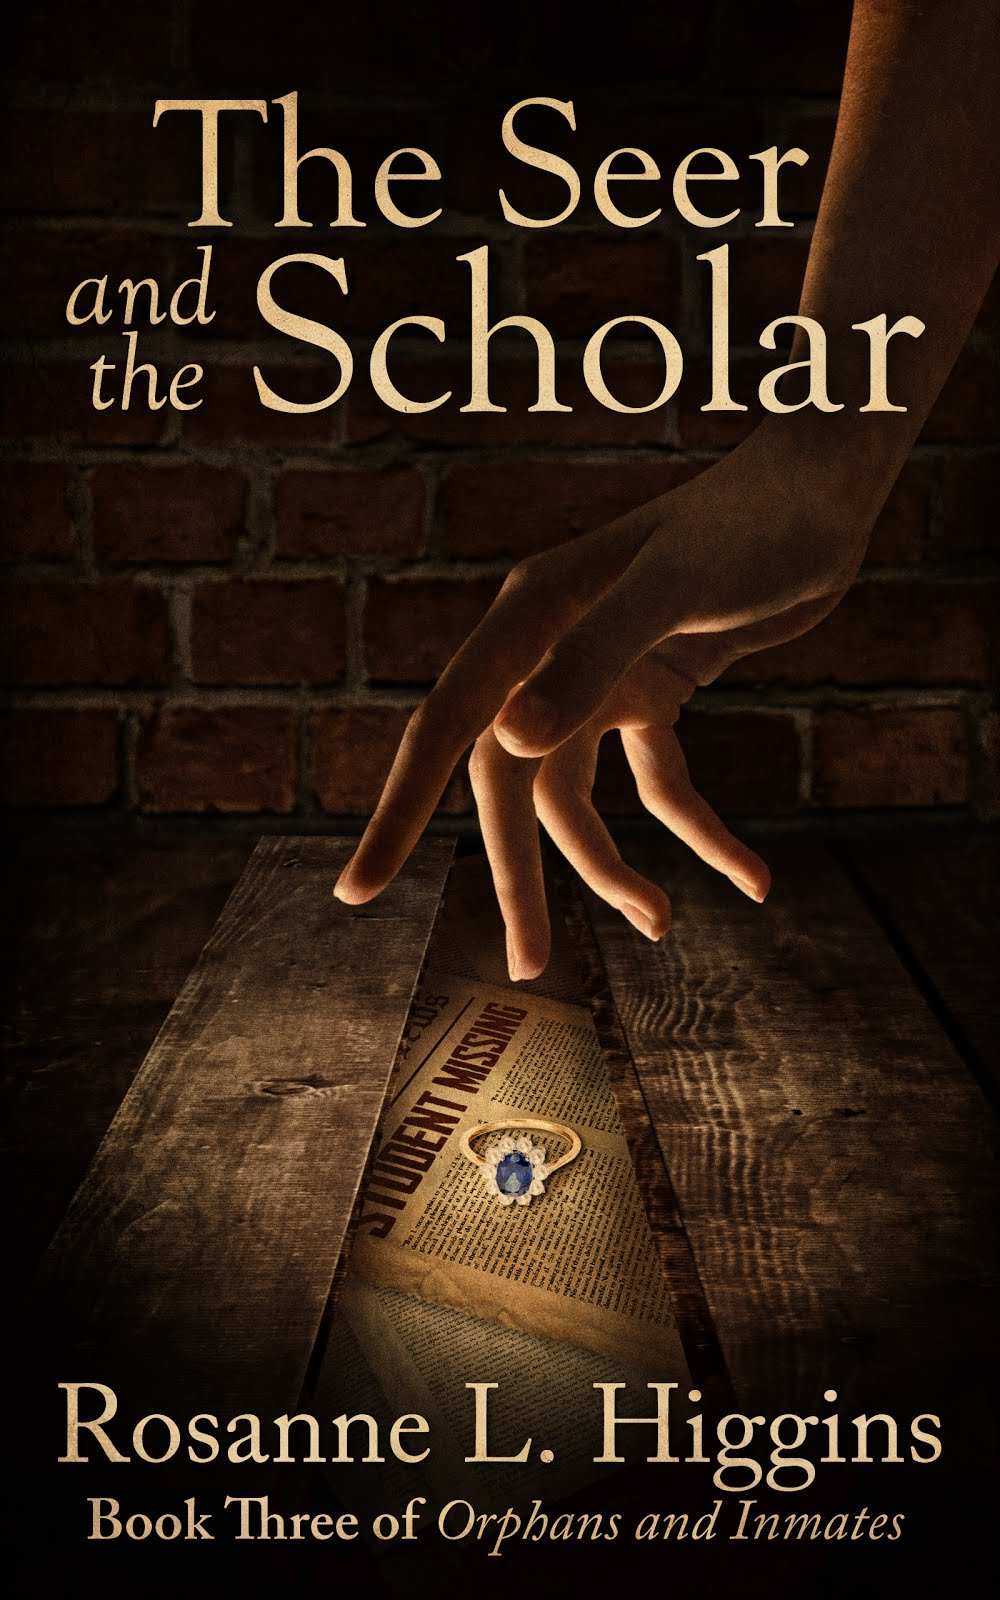 Book Three of the Orphans and Inmates Series